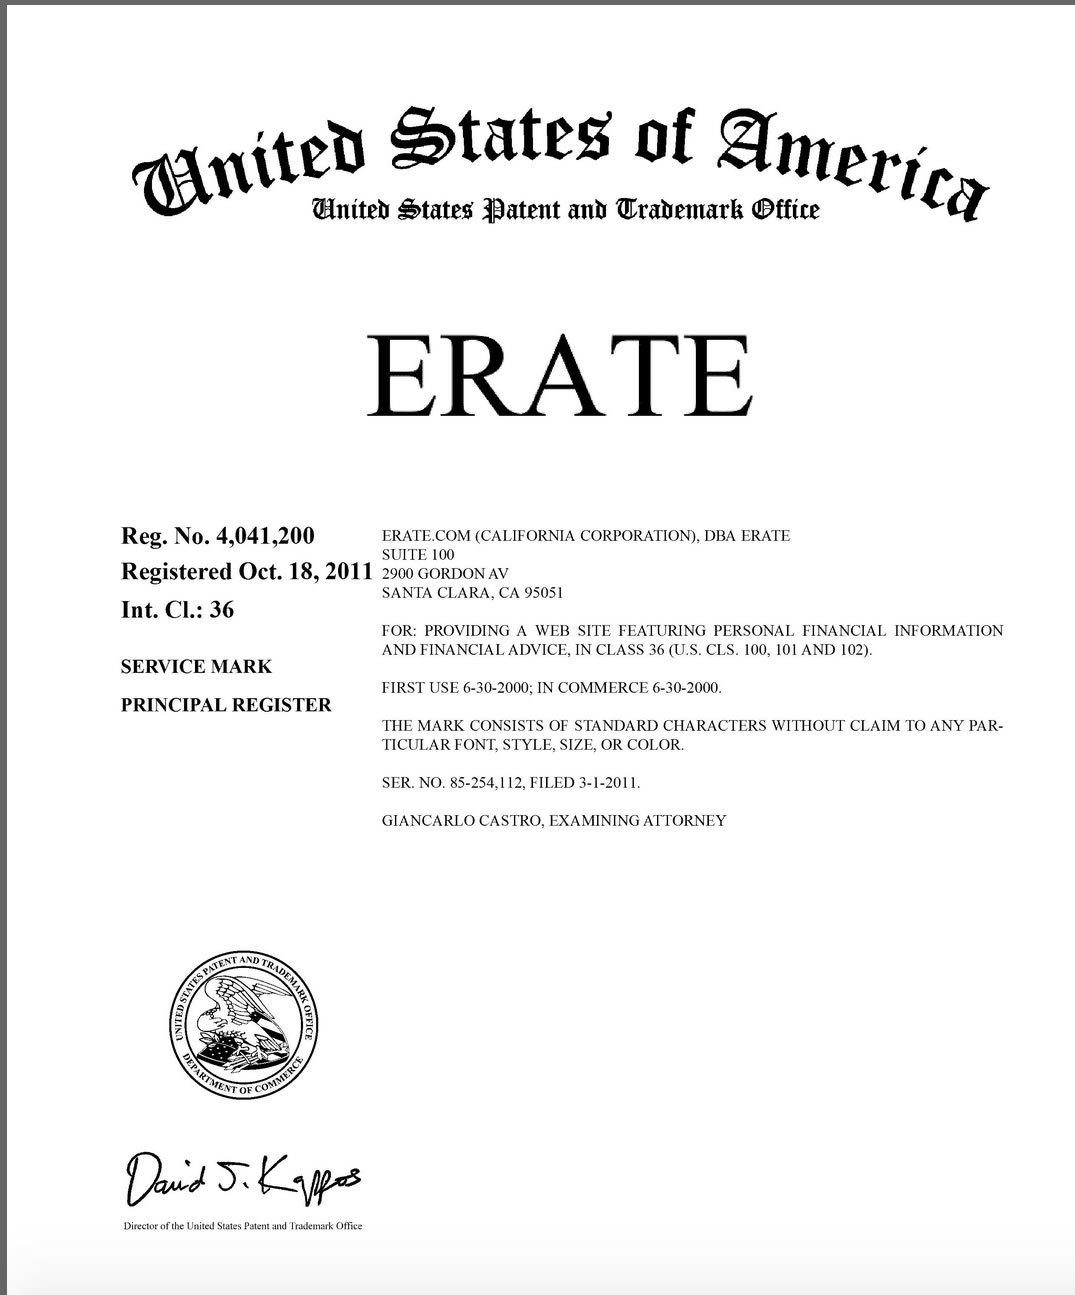 ERATE.com owns the Incontestable USPTO Trademark known as ERATE®